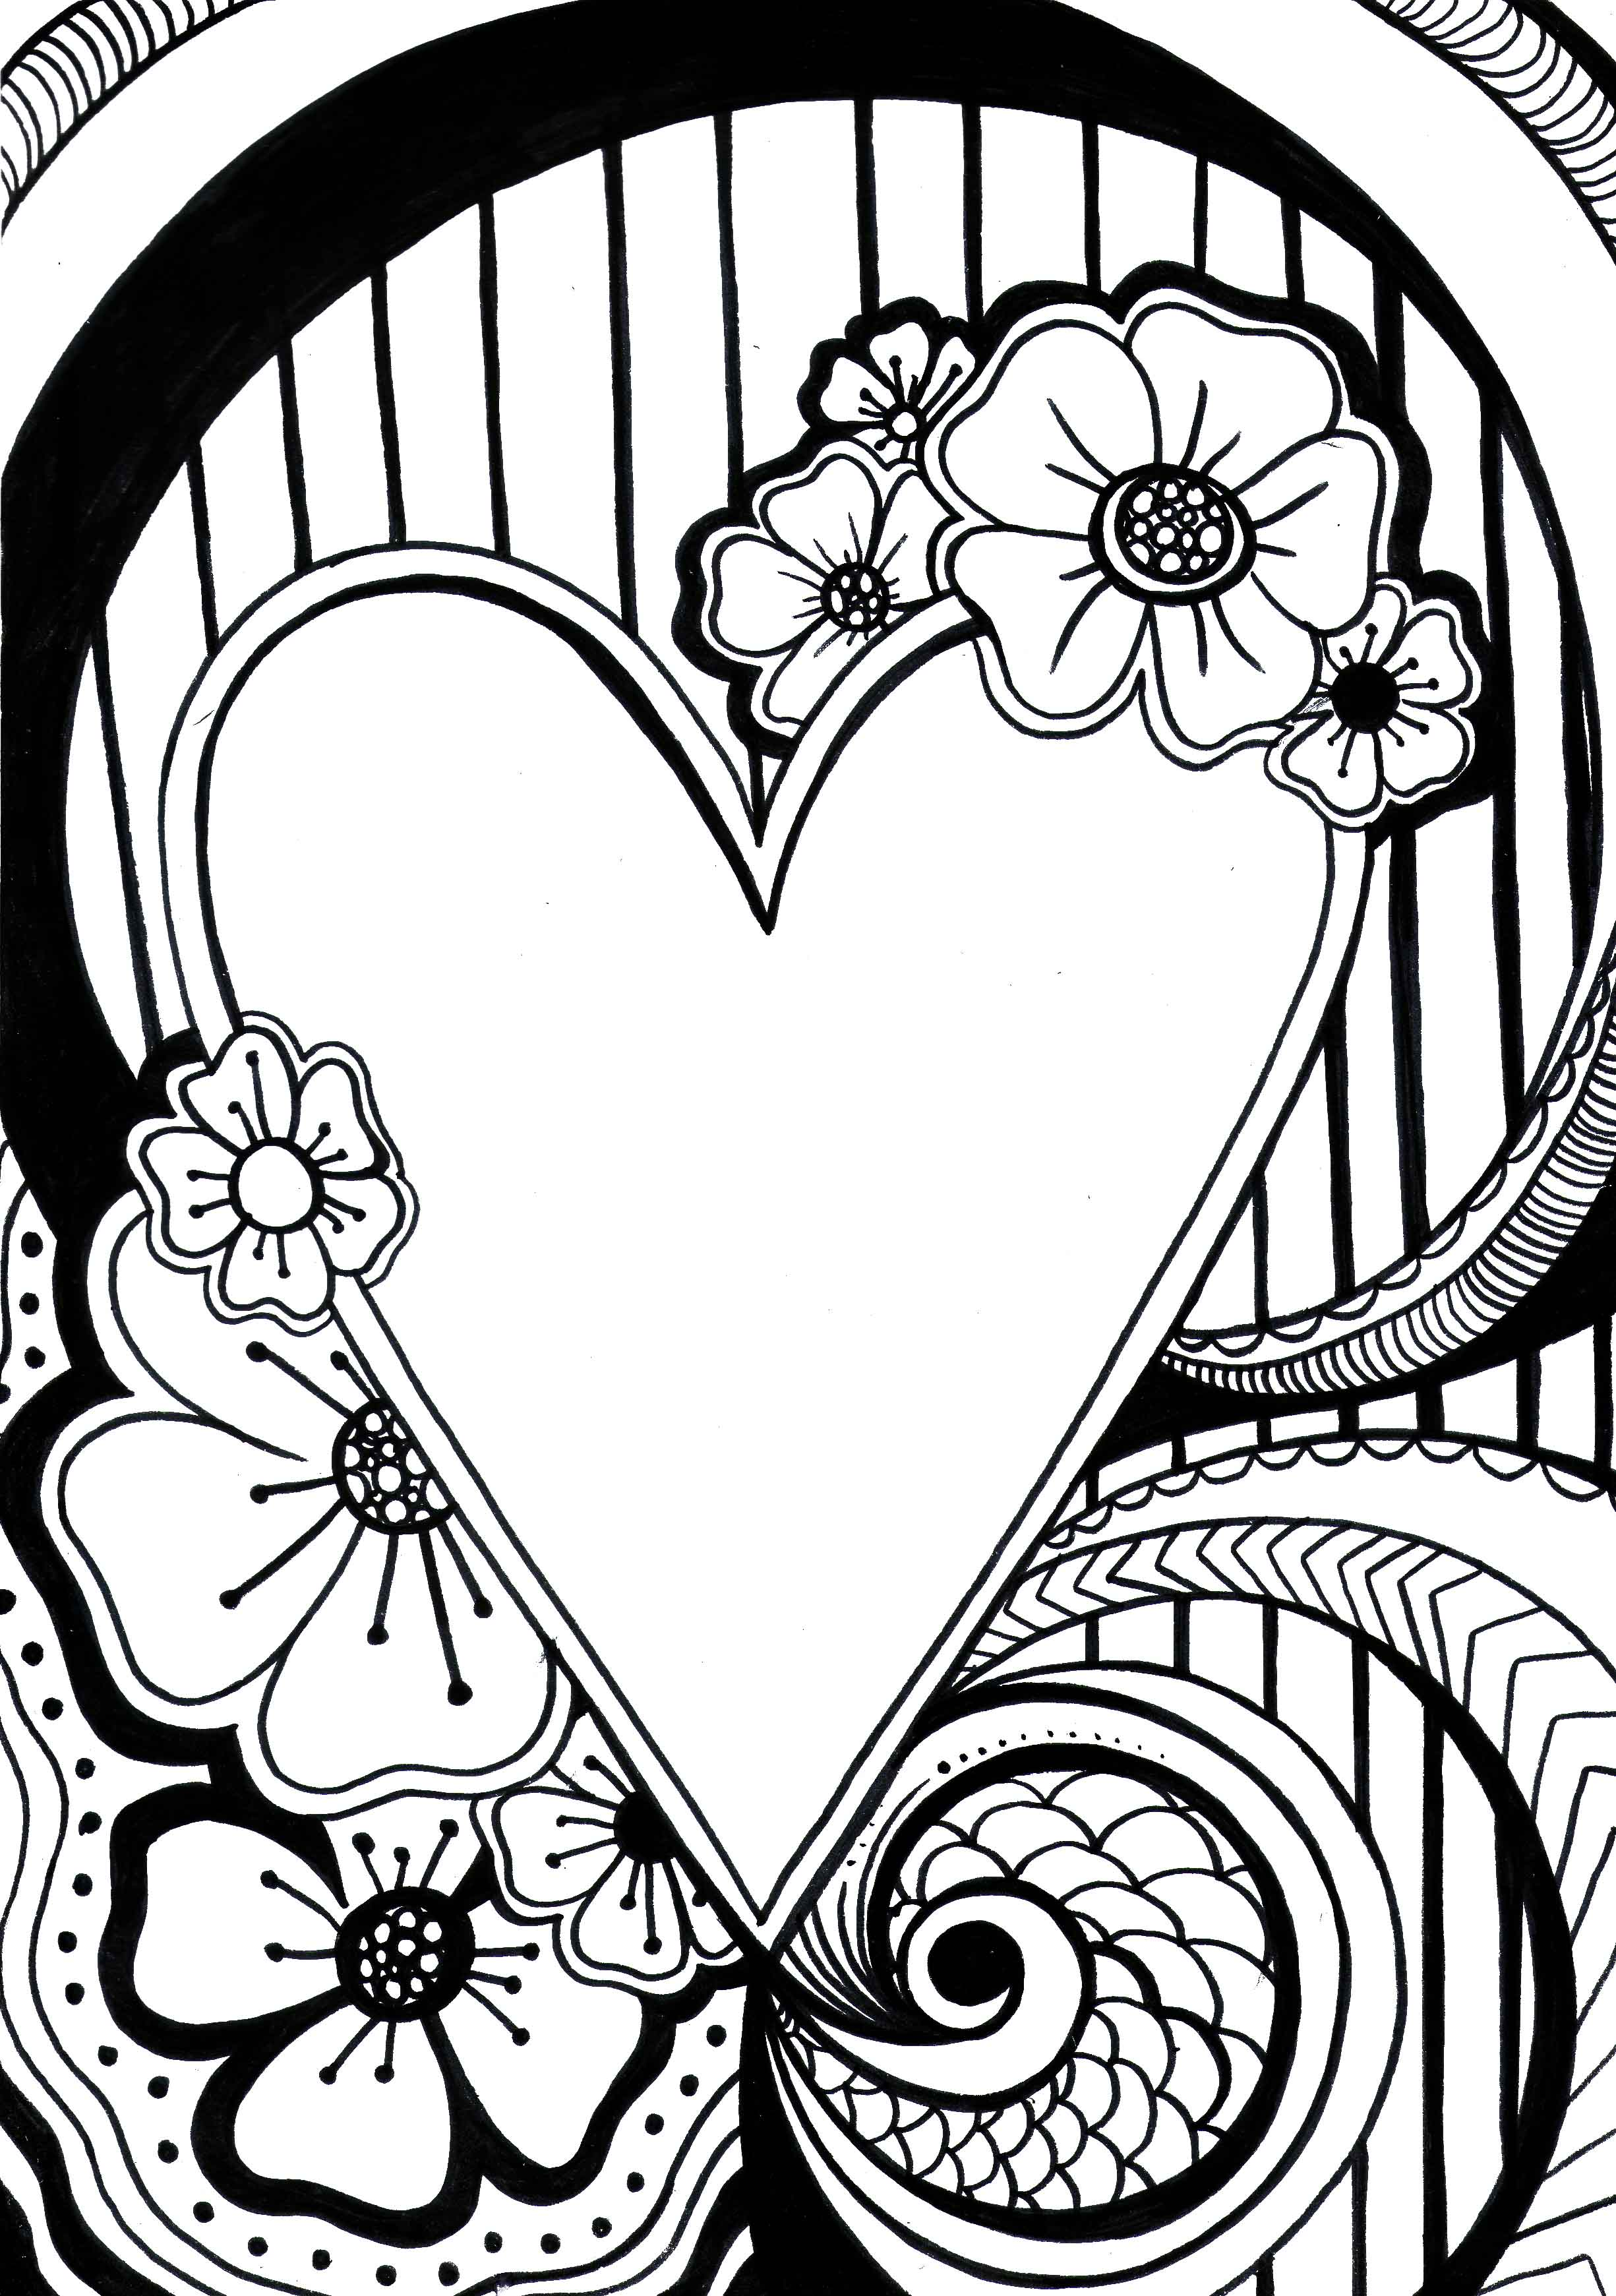 Free DBT Themed Colouring Page: SELF RESPECT EFFECTIVENESS